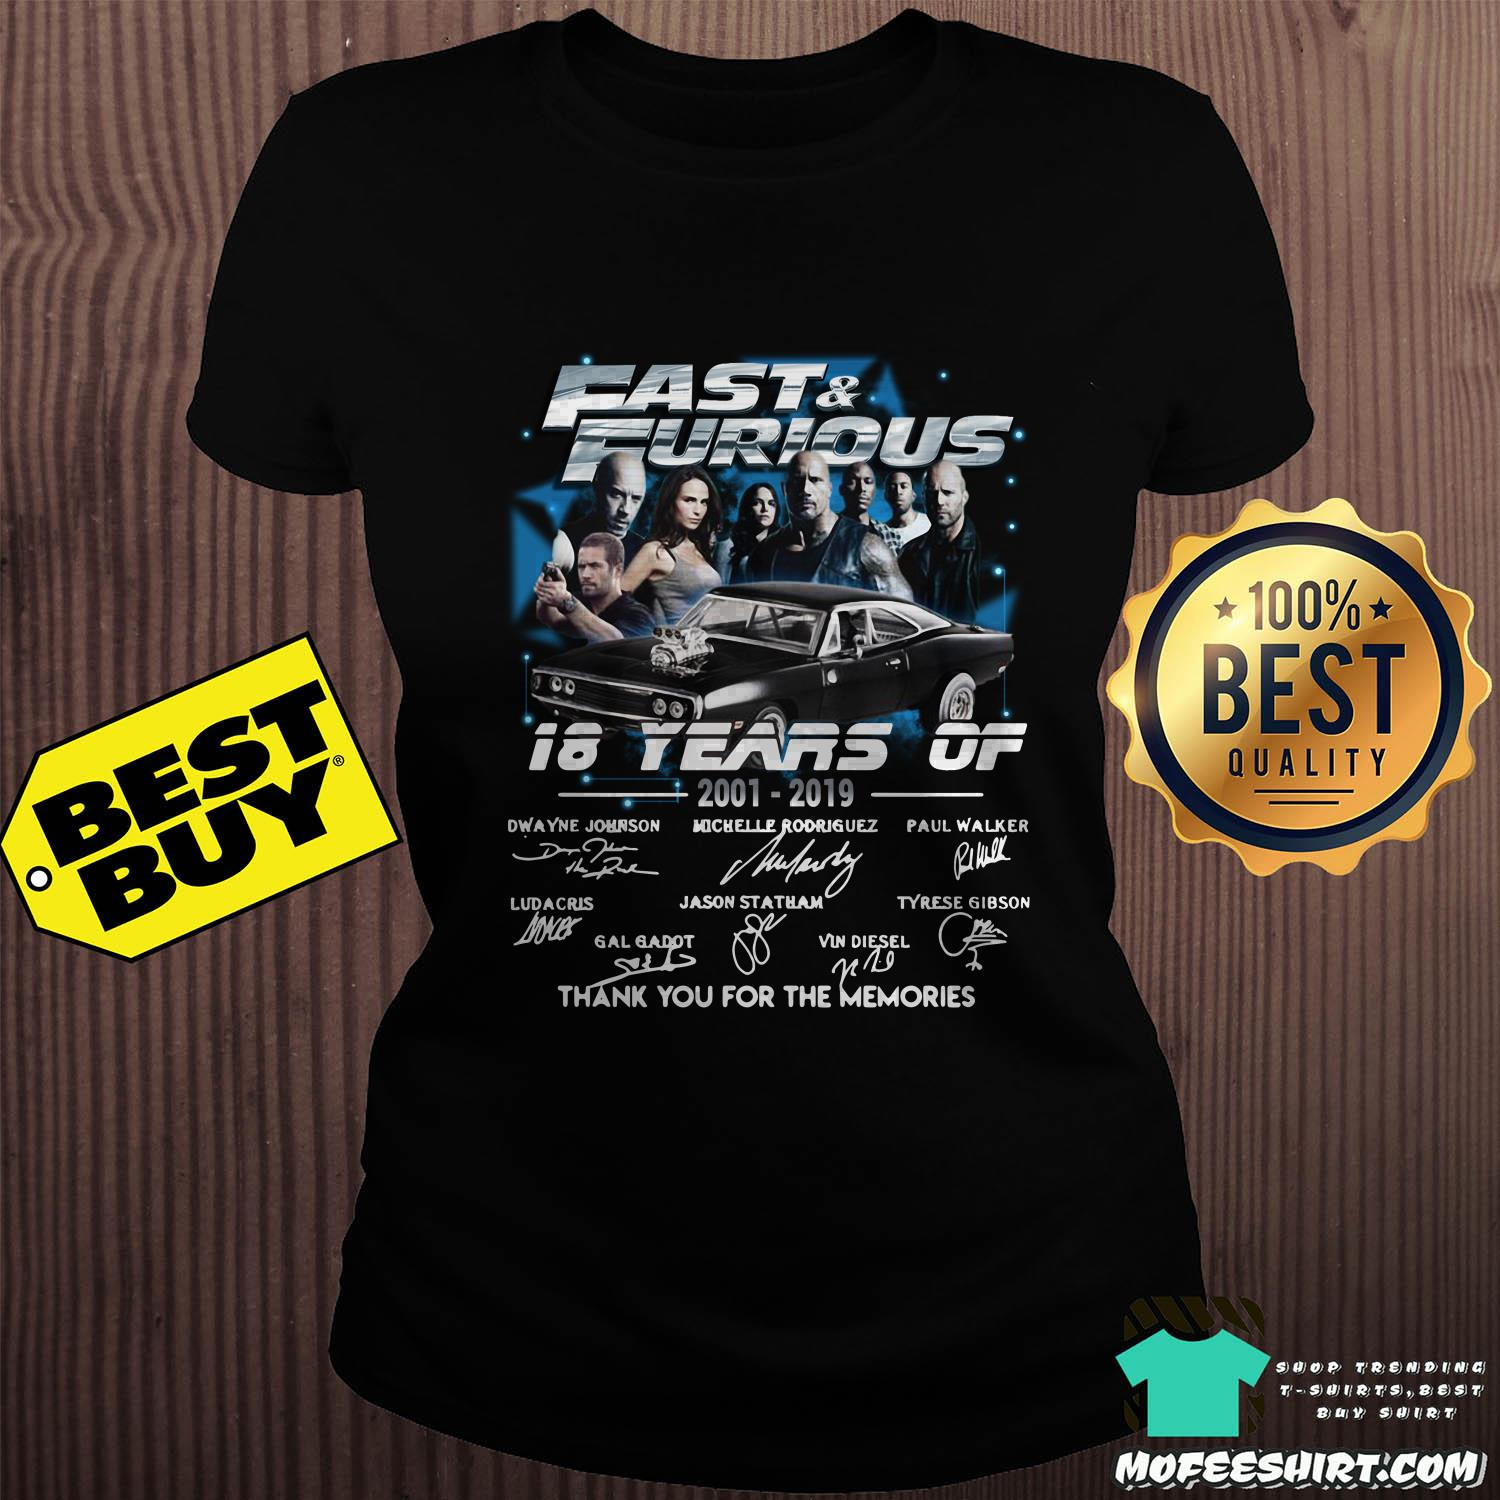 fast and furious 18 years of 2001 2019 thank you for the memories signature ladies tee sweater - Fast And Furious 18 Years Of 2001-2019 Thank You For The Memories Signature Shirt Sweater